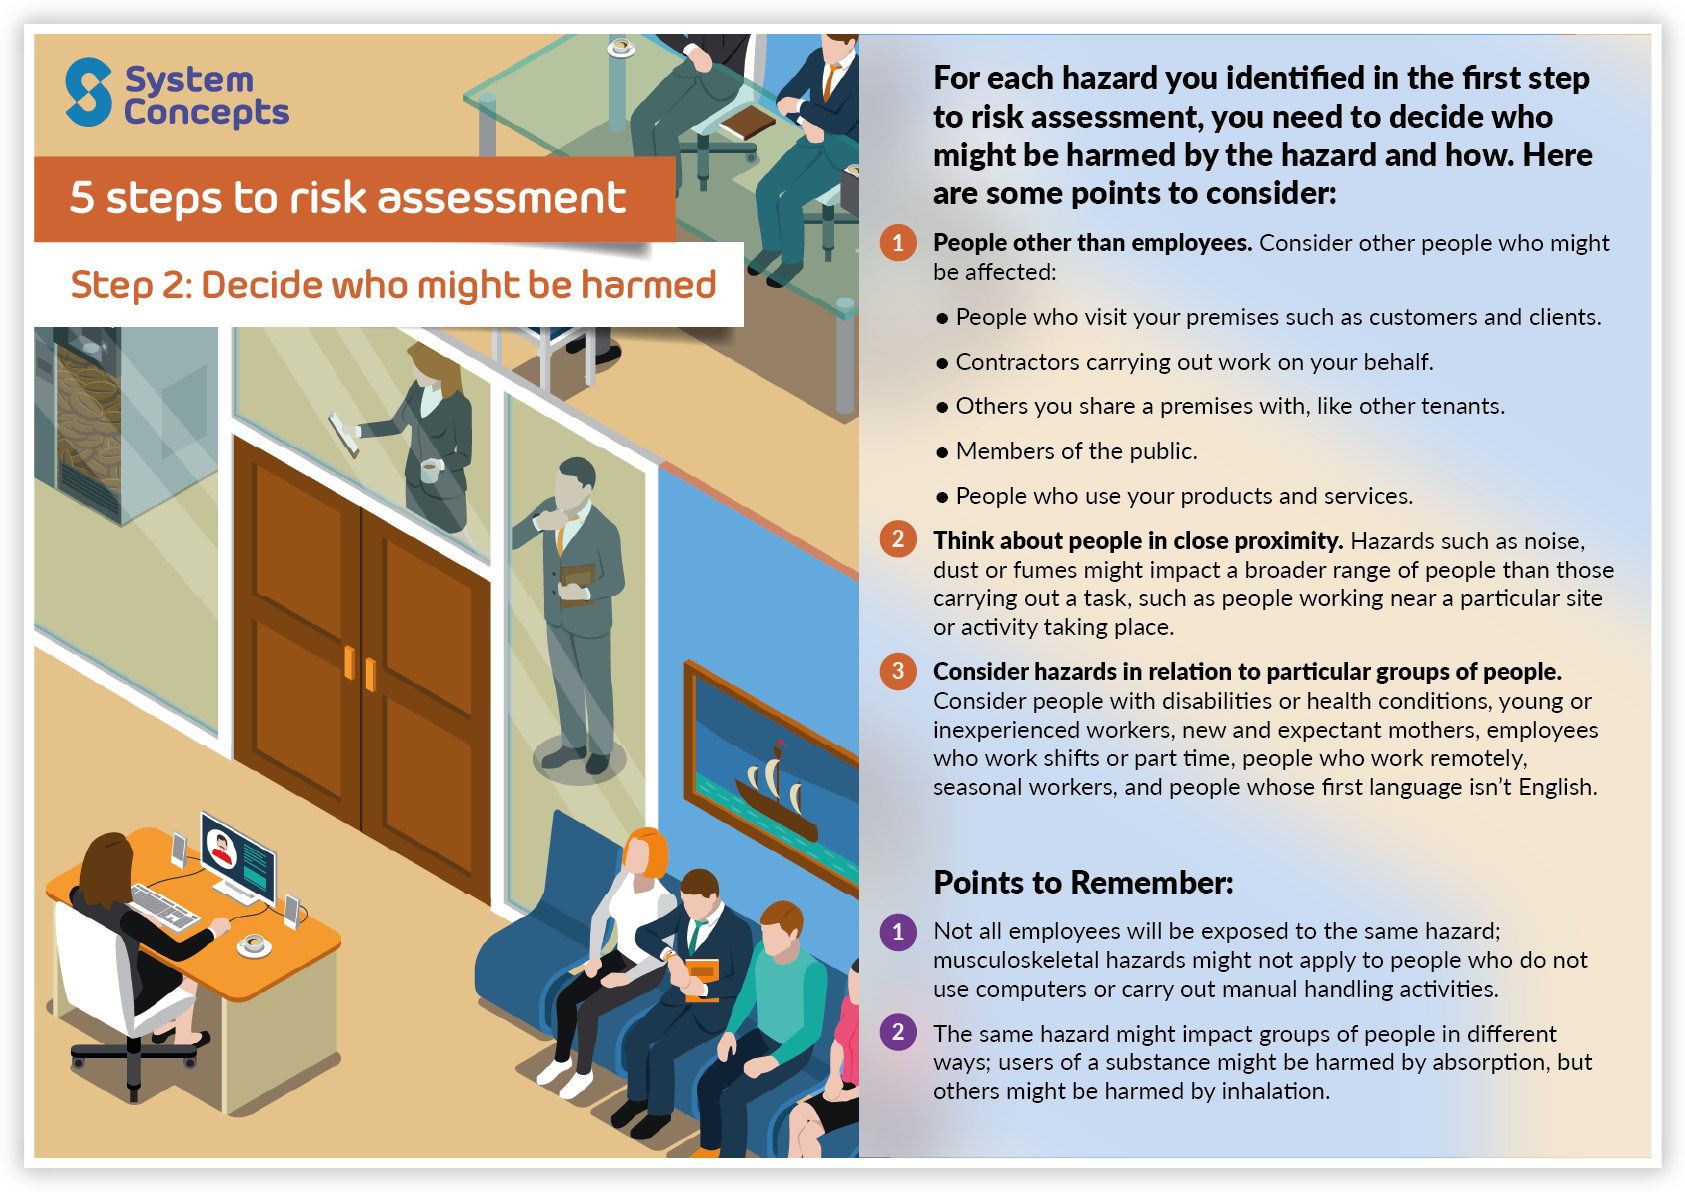 5 steps to risk assessment. Step 2 - Decide who might be harmed. Infographic with our tips to identifying who might be harmed by hazards and points to remember.